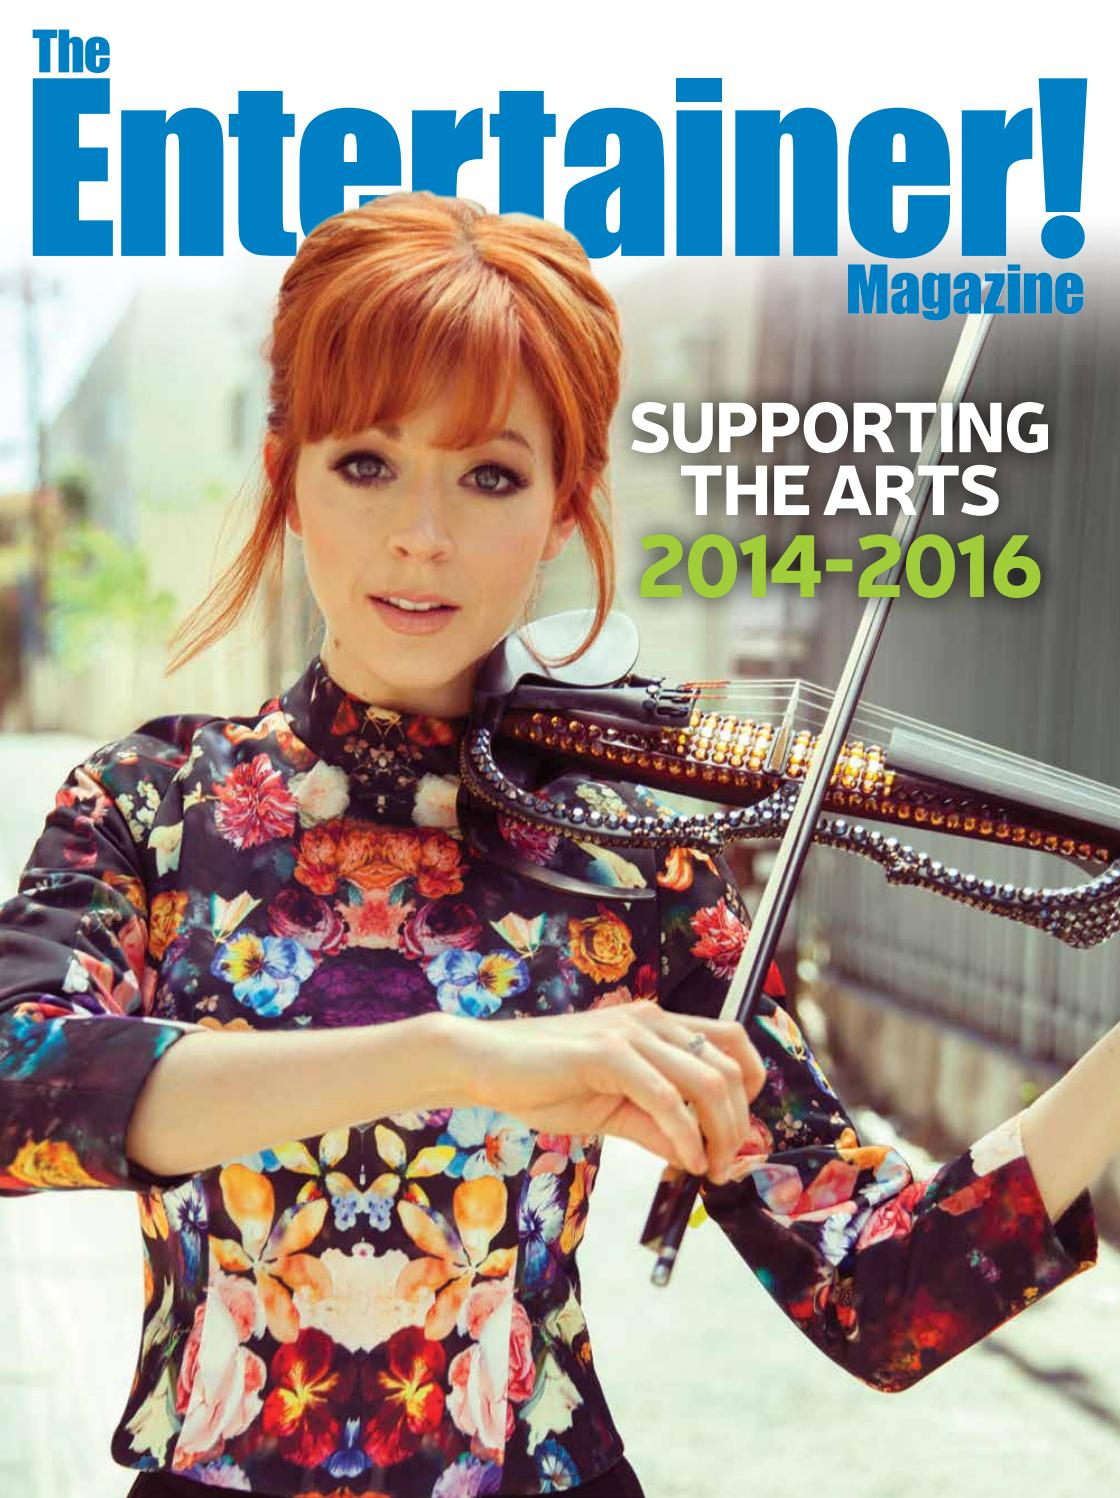 f9956016ec The Entertainer! Magazine Supporting The Arts 2014-2016 by Times Media  Group - issuu